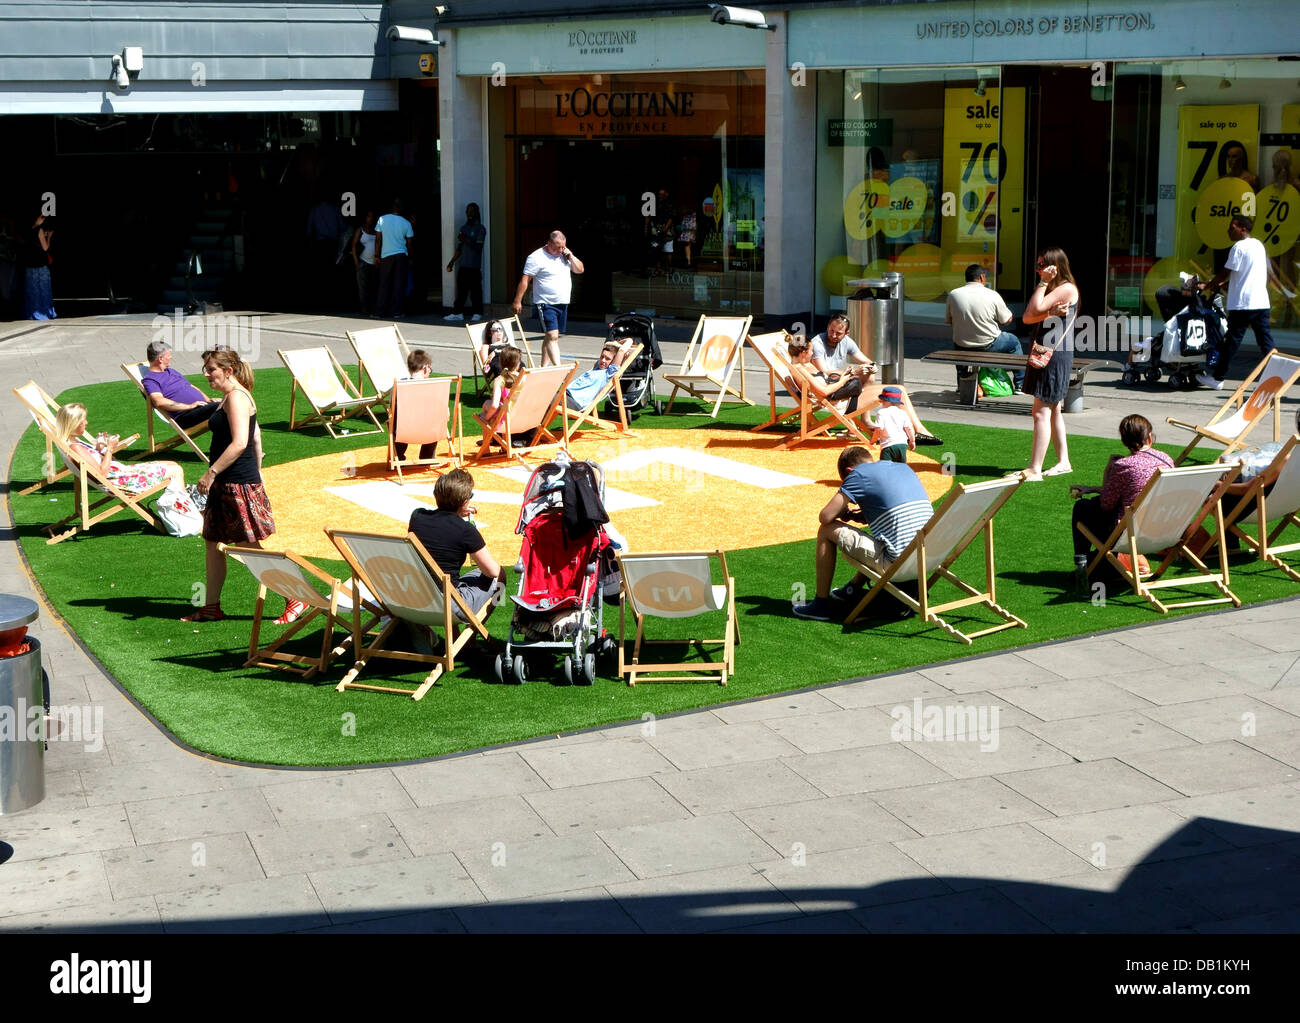 Artificial lawn and deckchairs for hot weather in N1 Centre, Islington, London - Stock Image